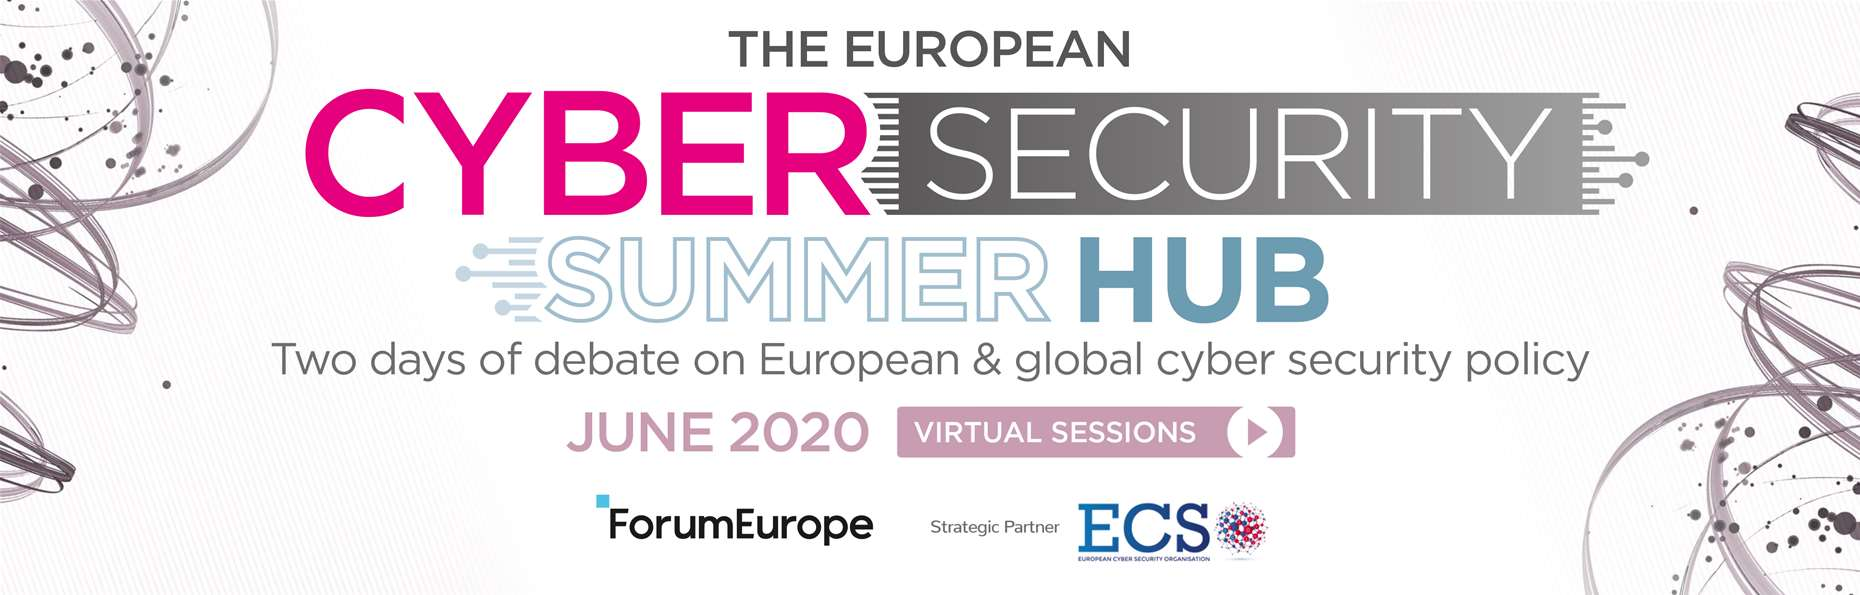 Cyber Security Summer Hub